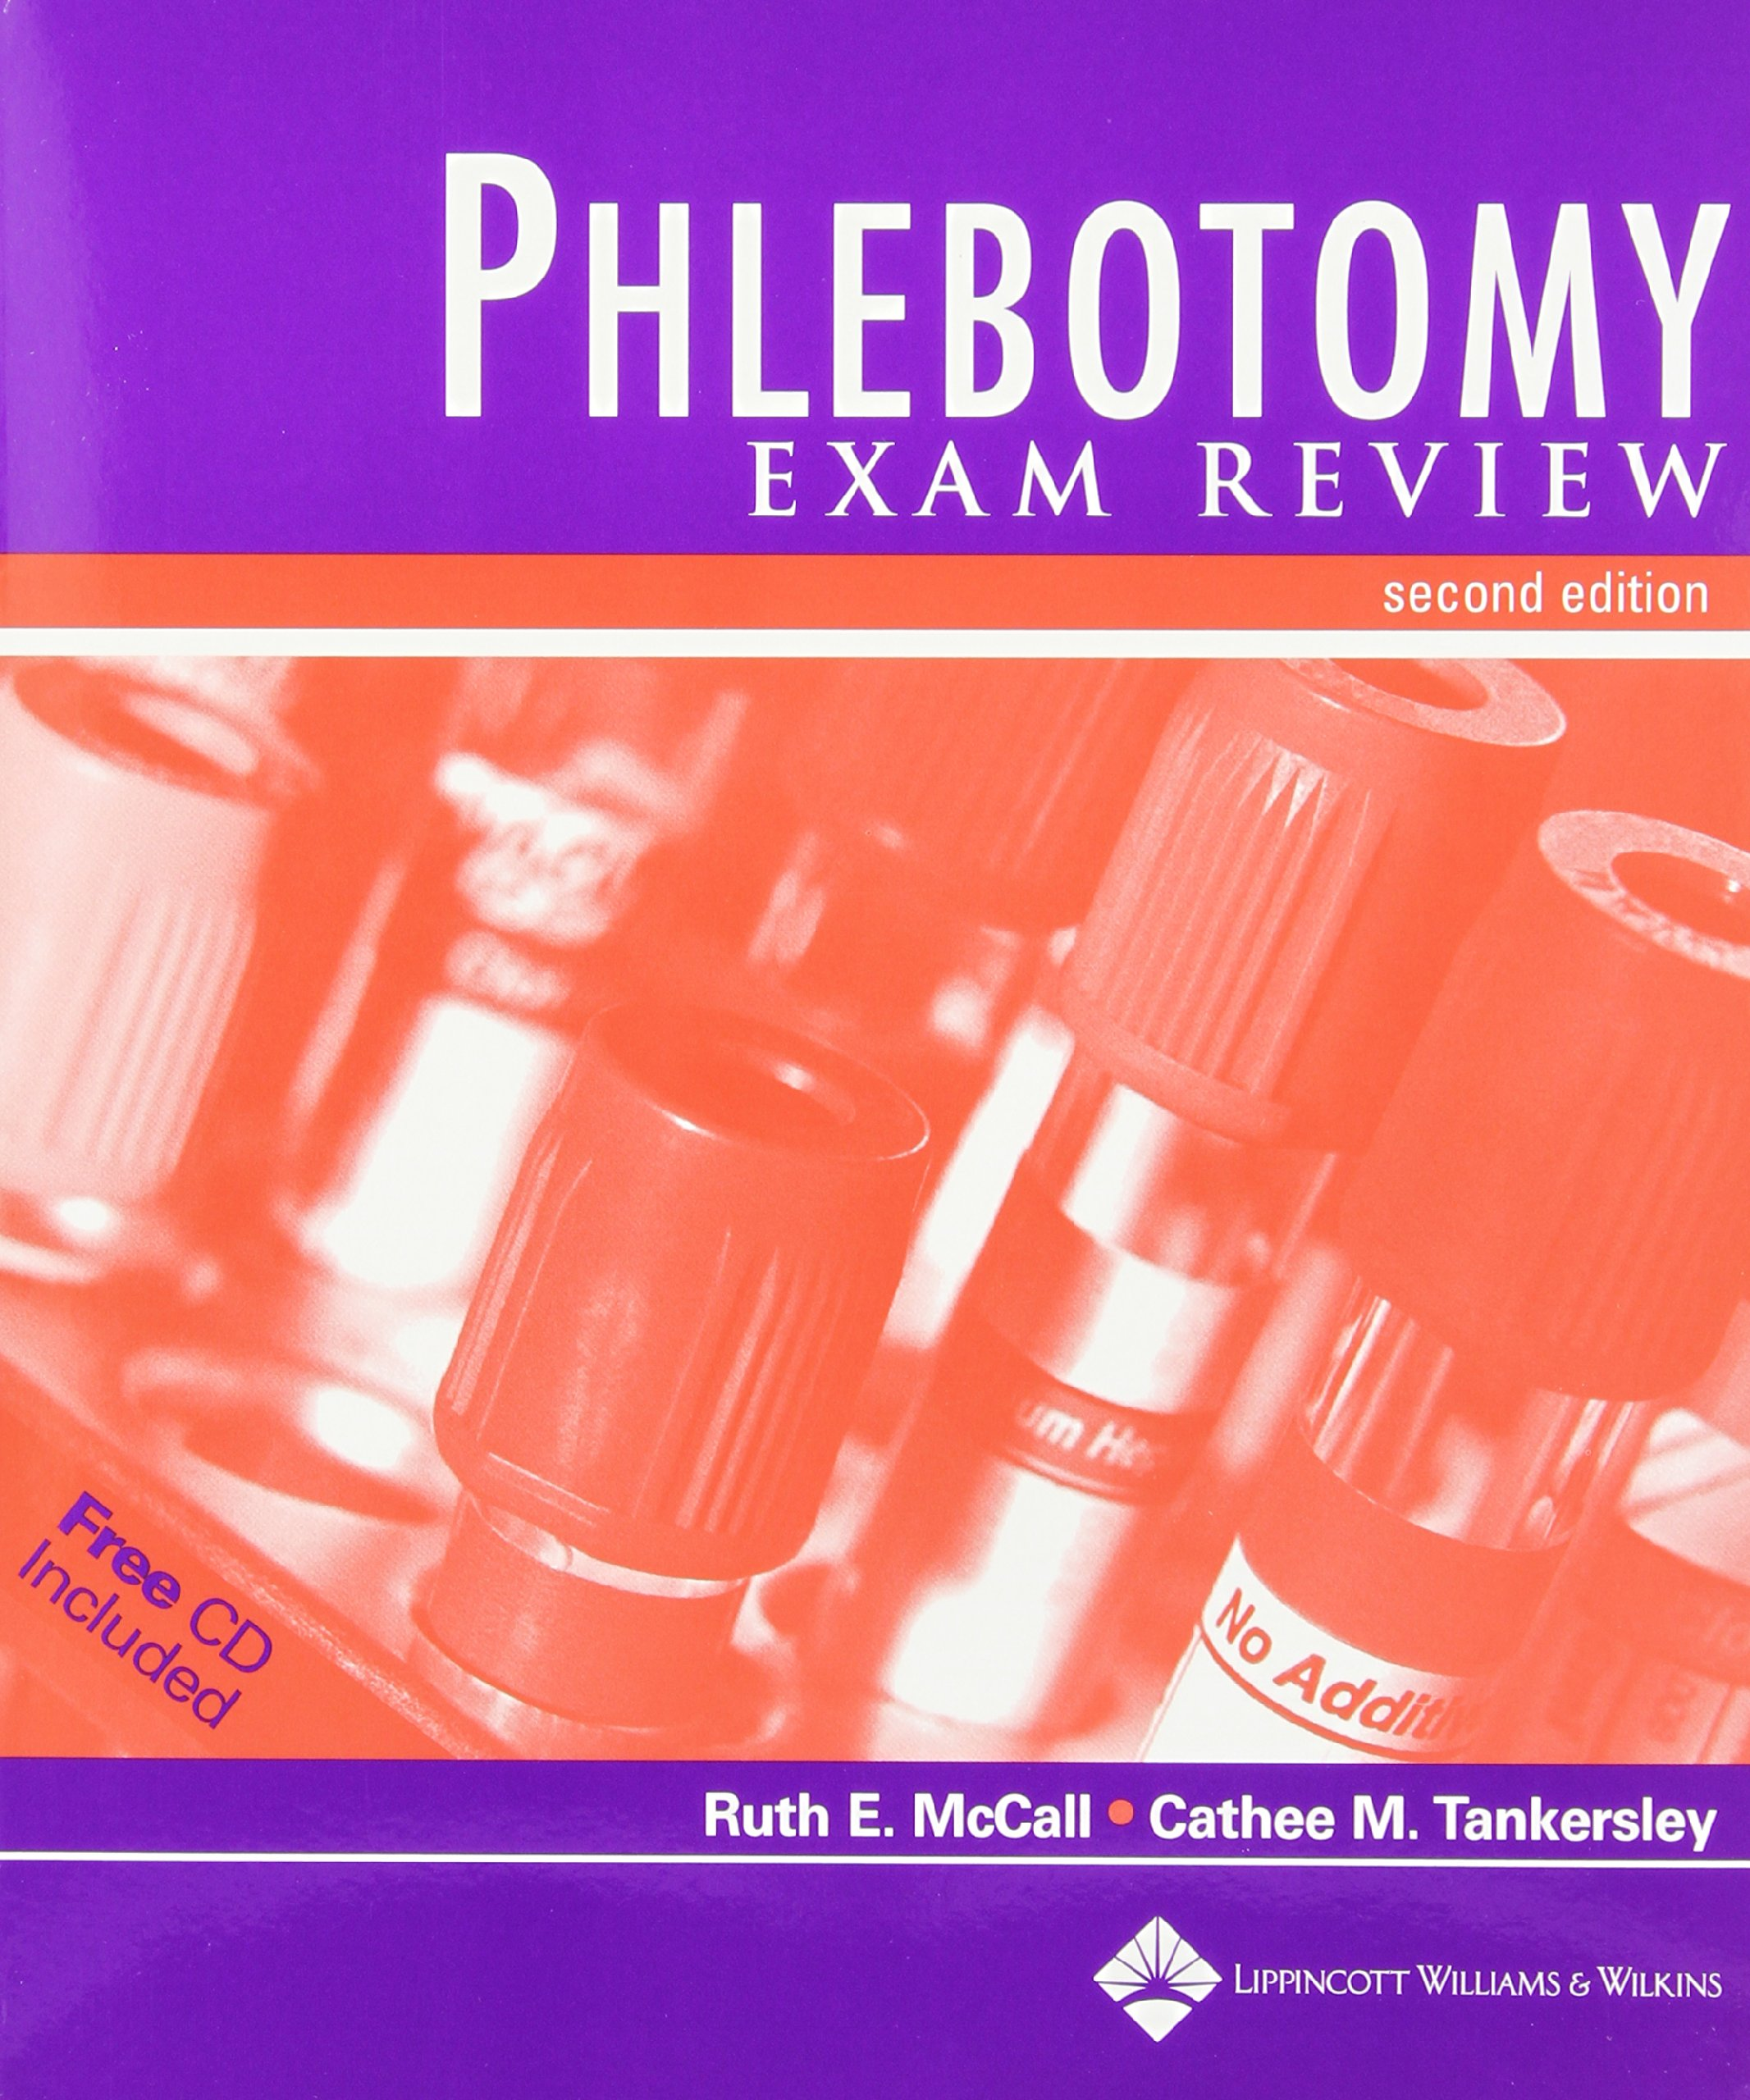 Phlebotomy essentials phlebotomy exam review ruth e mccall phlebotomy essentials phlebotomy exam review ruth e mccall cathee m tankersley 9780781750851 amazon books 1betcityfo Gallery